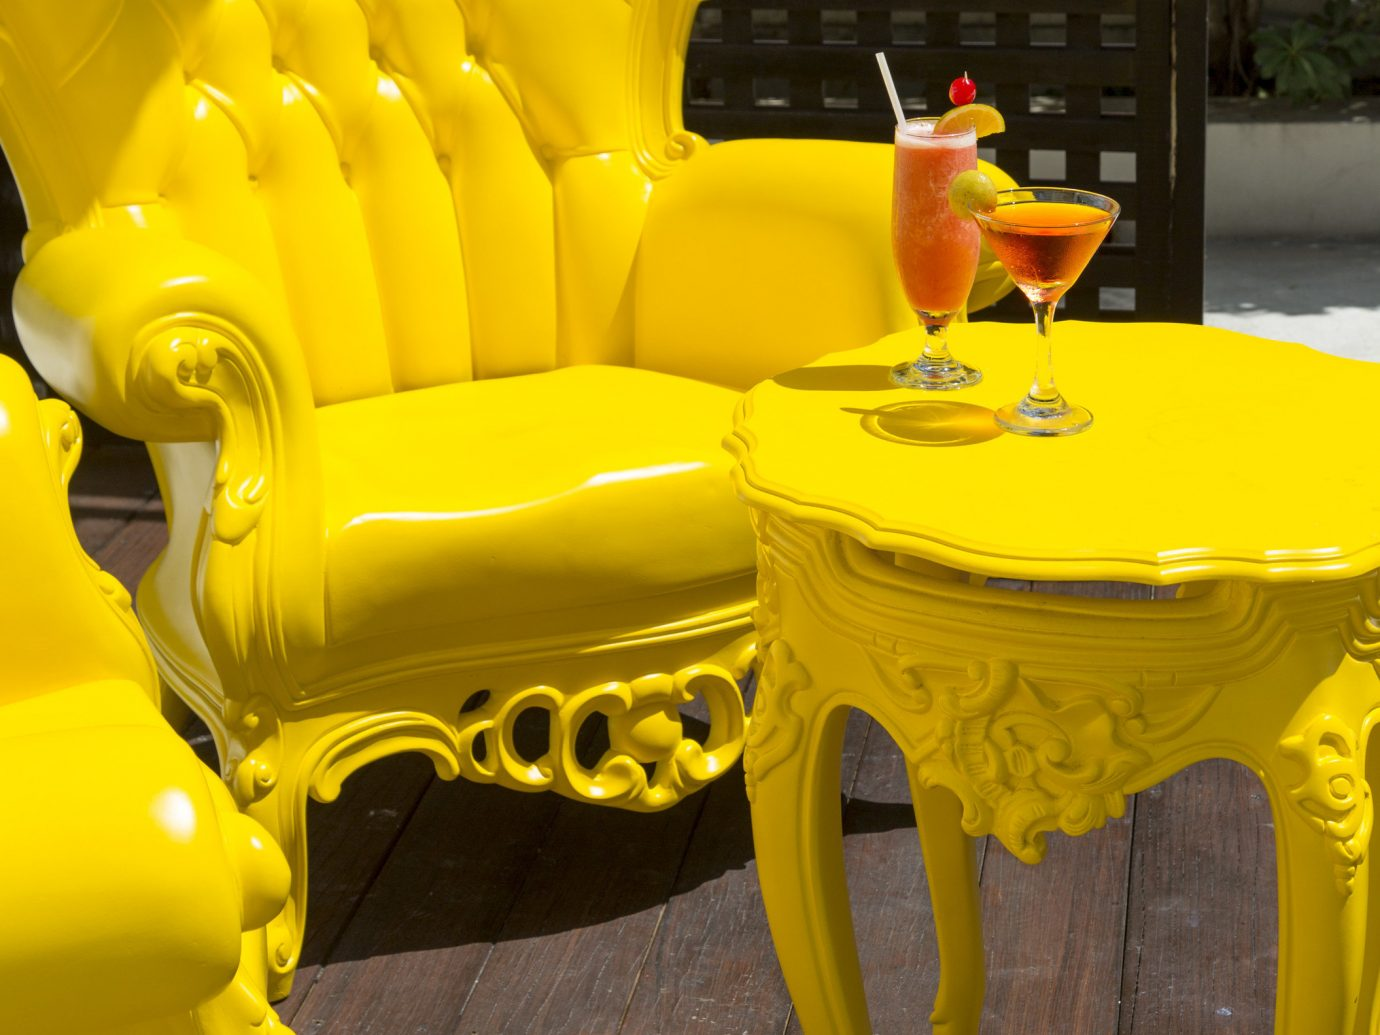 Hotels yellow furniture chair Play inflatable